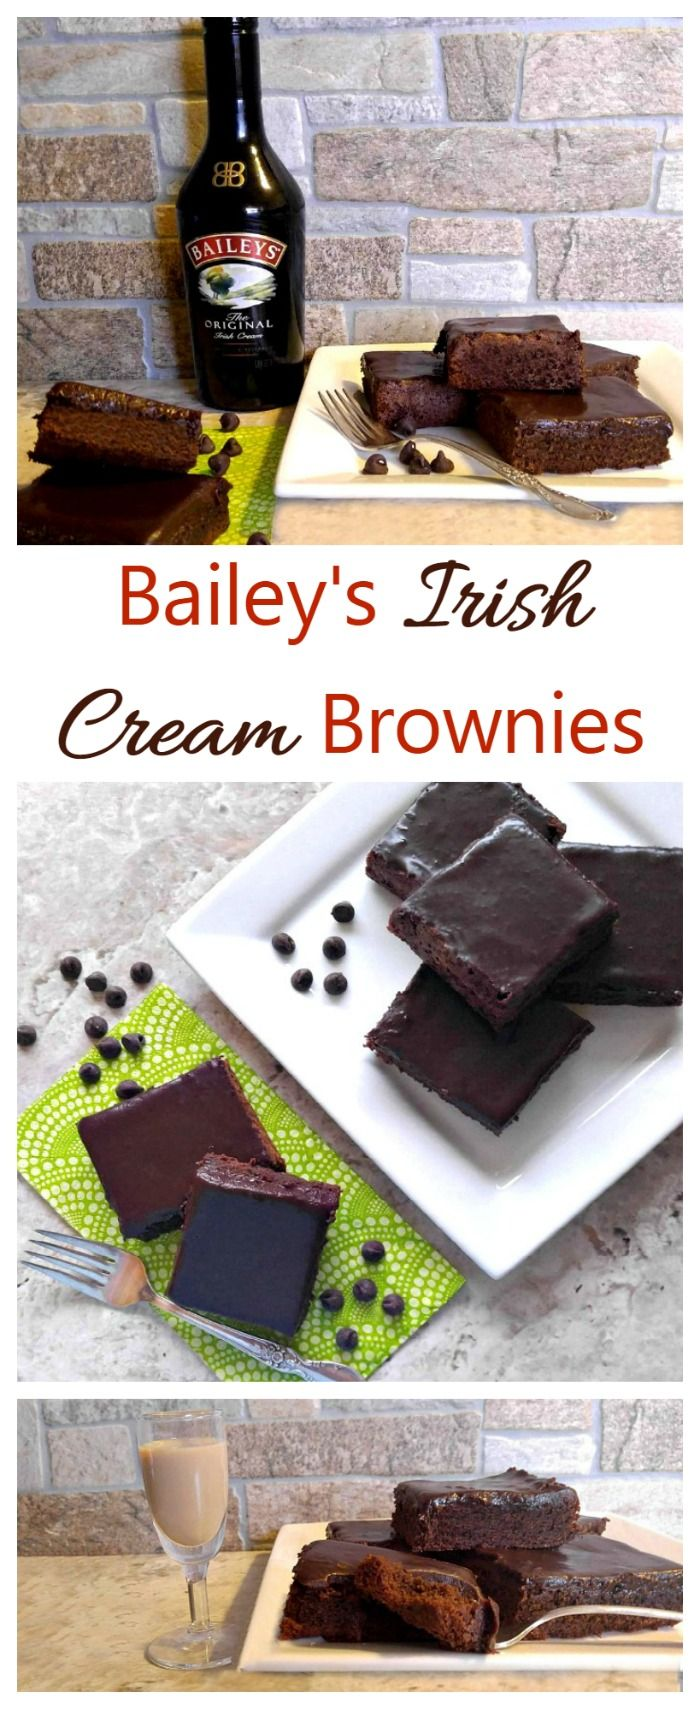 These Bailey's Irish Cream Brownie are rich, decadent and moist, with the most amazing ganache ever. Both the brownies and the ganache are flavored with Bailey's so this is a dessert for the grown ups. @baileysus